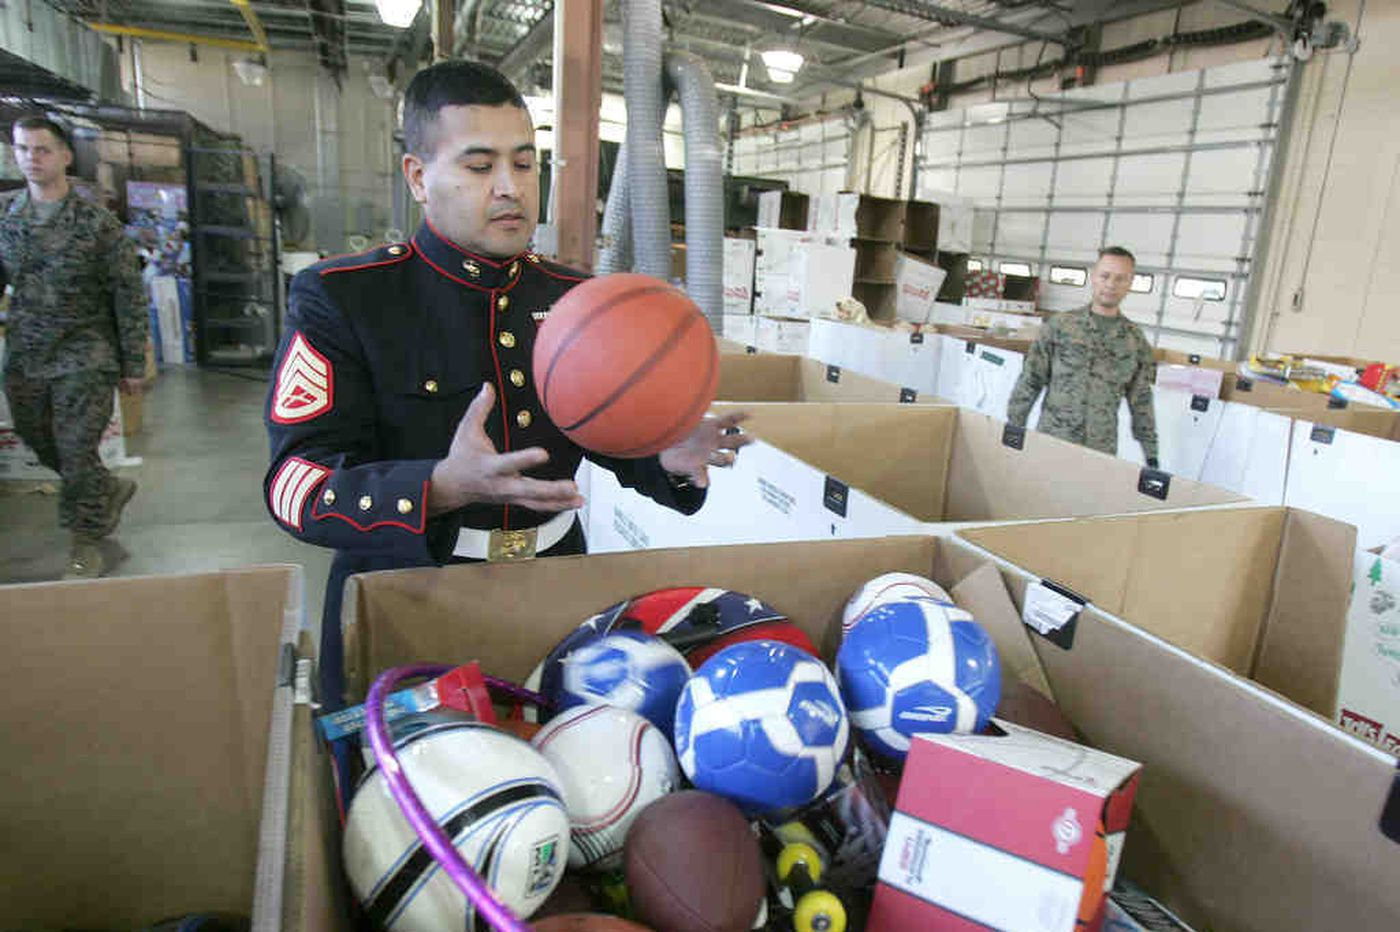 Once again, secret Santas fill Toys for Tots collections